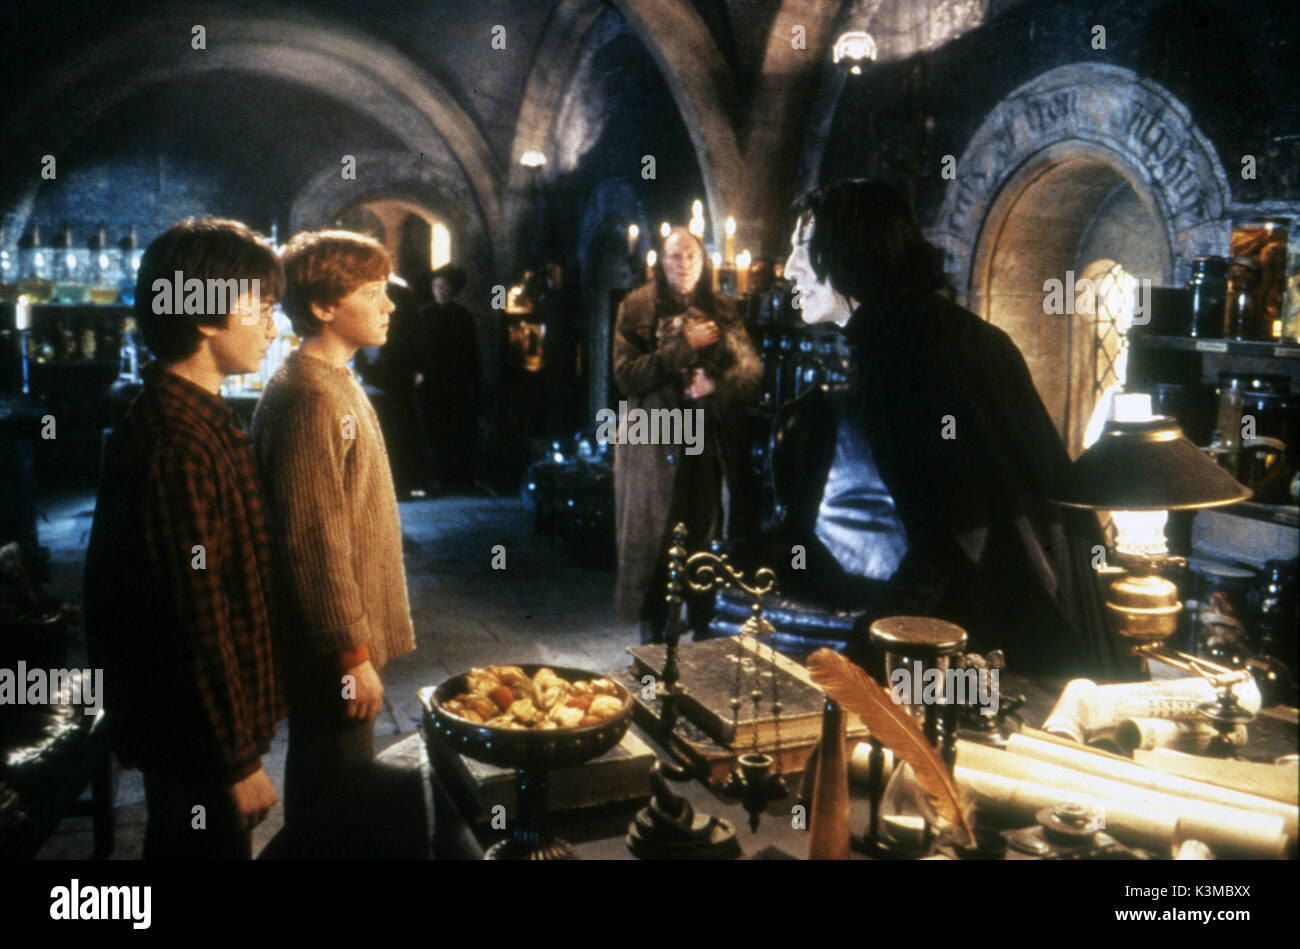 HARRY POTTER AND THE CHAMBER OF SECRETS [BR / US / GER 2002] [L-R] DANIEL RADCLIFFE as Harry Potter, RUPERT GRINT as Ron Weasley, DAVID BRADLEY as Argus Filch, ALAN RICKMAN as Severus Snape     Date: 2002 - Stock Image